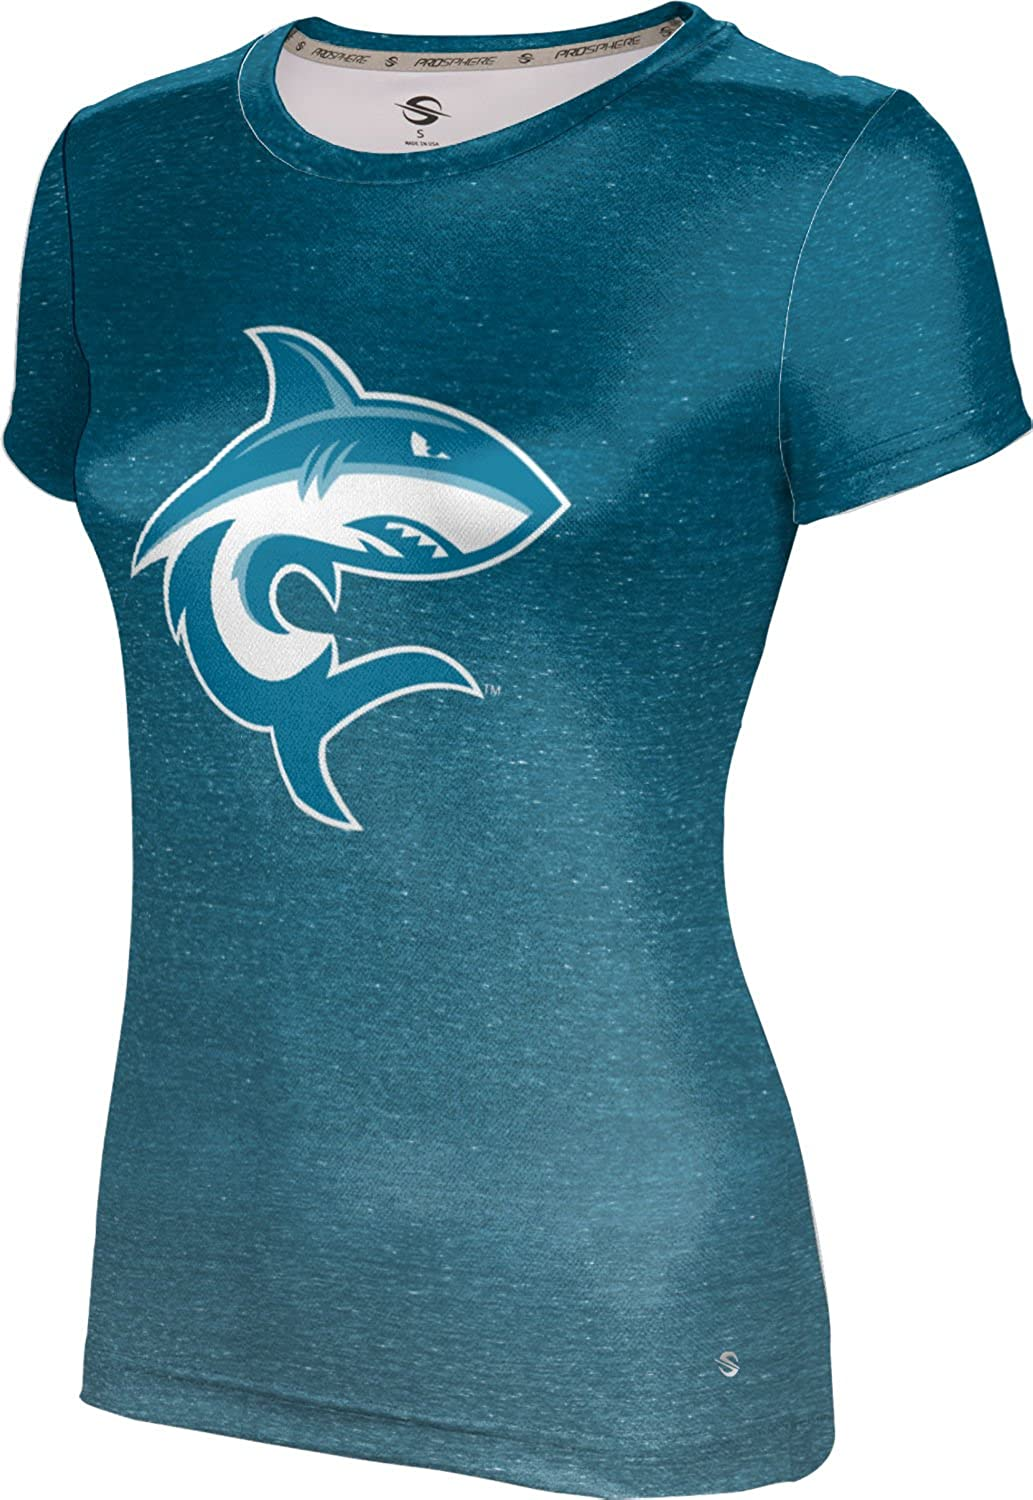 ProSphere Hawaii Pacific University Girls' Performance T-Shirt (Ombre)